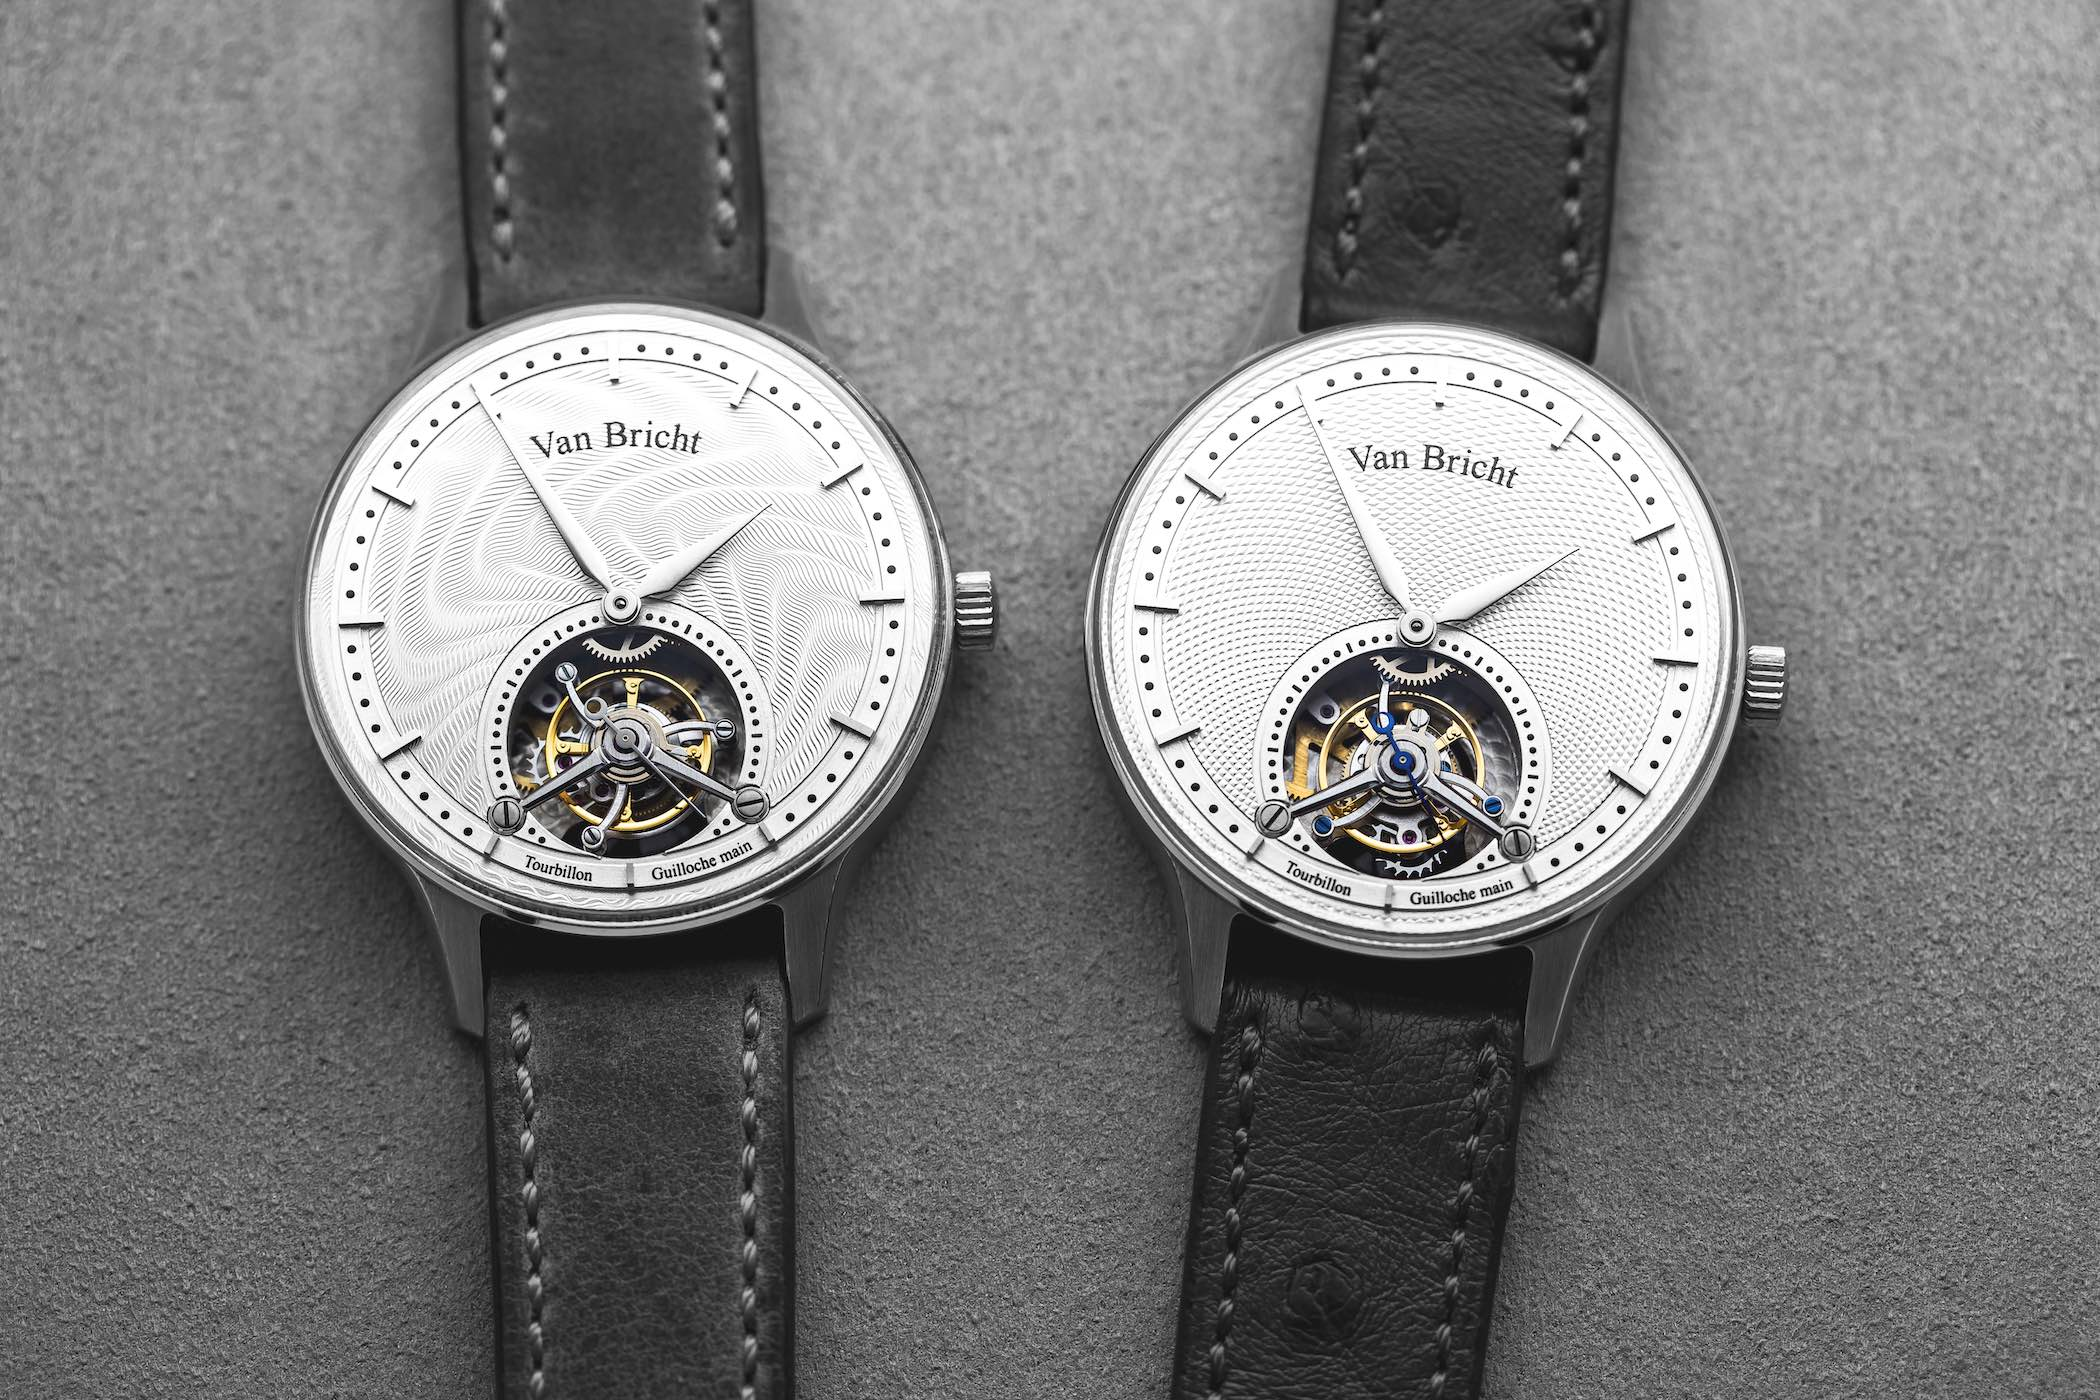 Van Bricht Old Mind - Tourbillon Watch Belgium